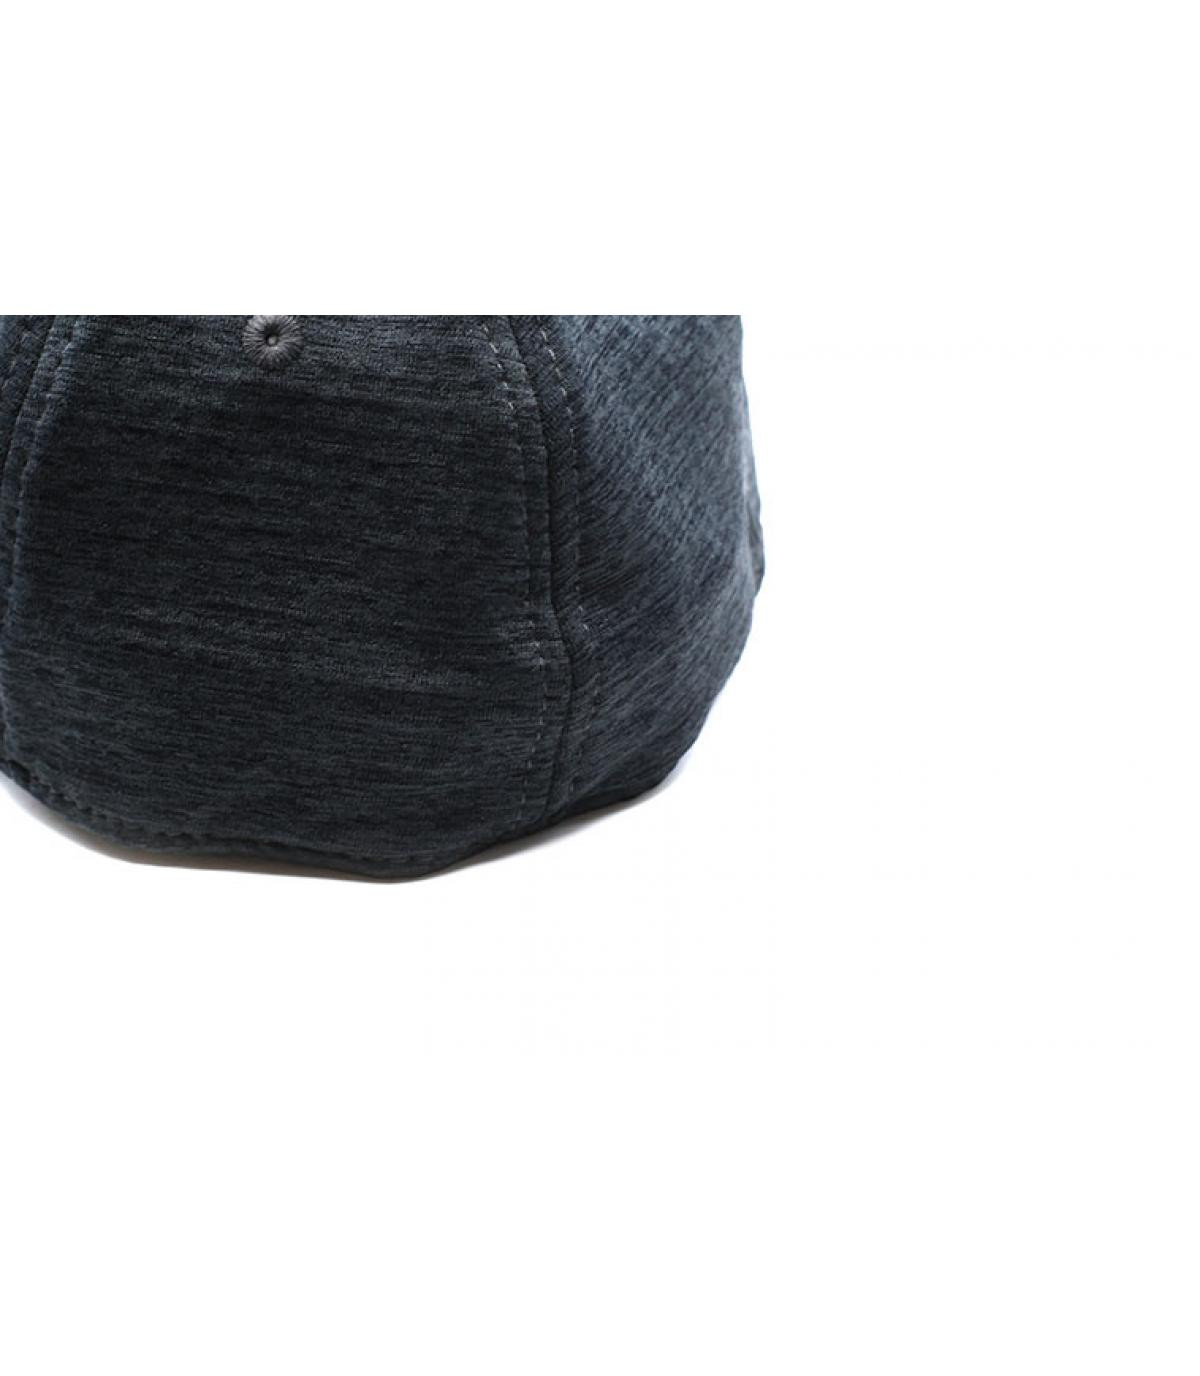 Détails Casquette NY Dryswitch Jersey 39Thirty black cardinal - image 5